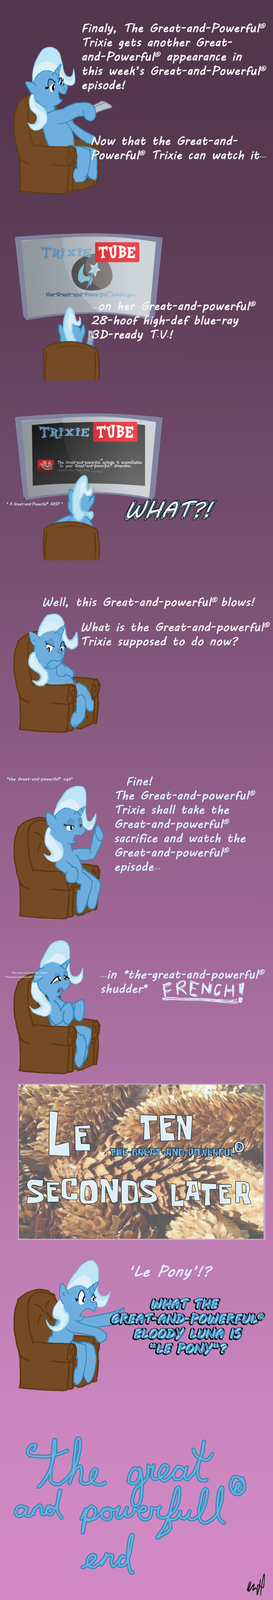 The Great and Powerful (r) comic